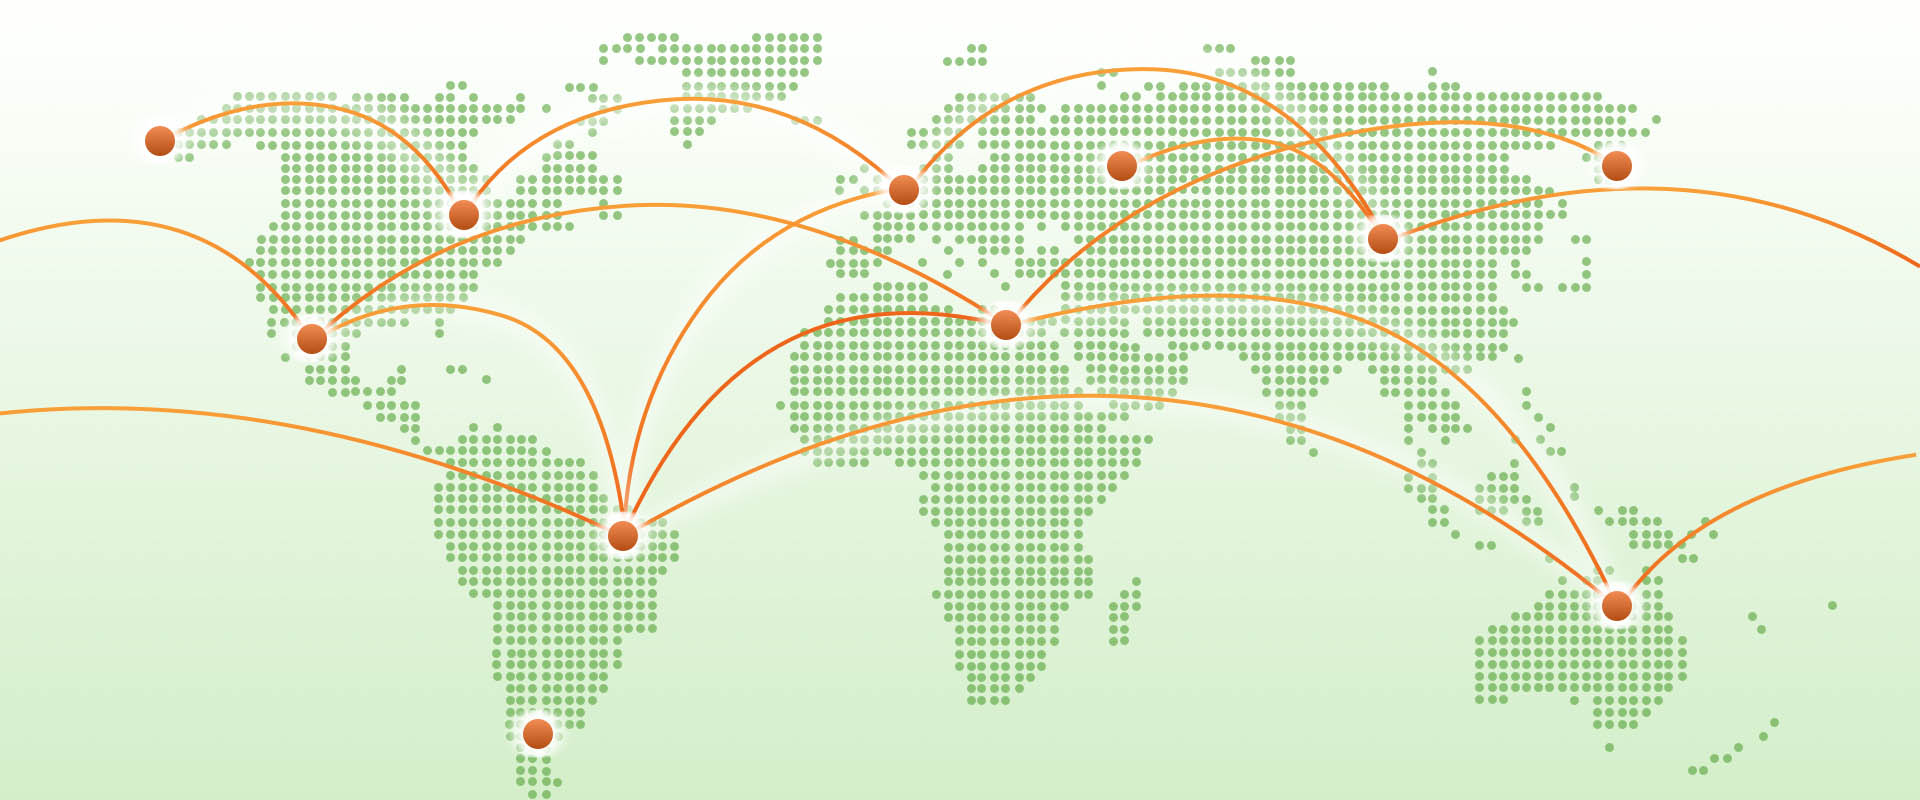 Illustration showing the global connections of the internet through Web 3.0